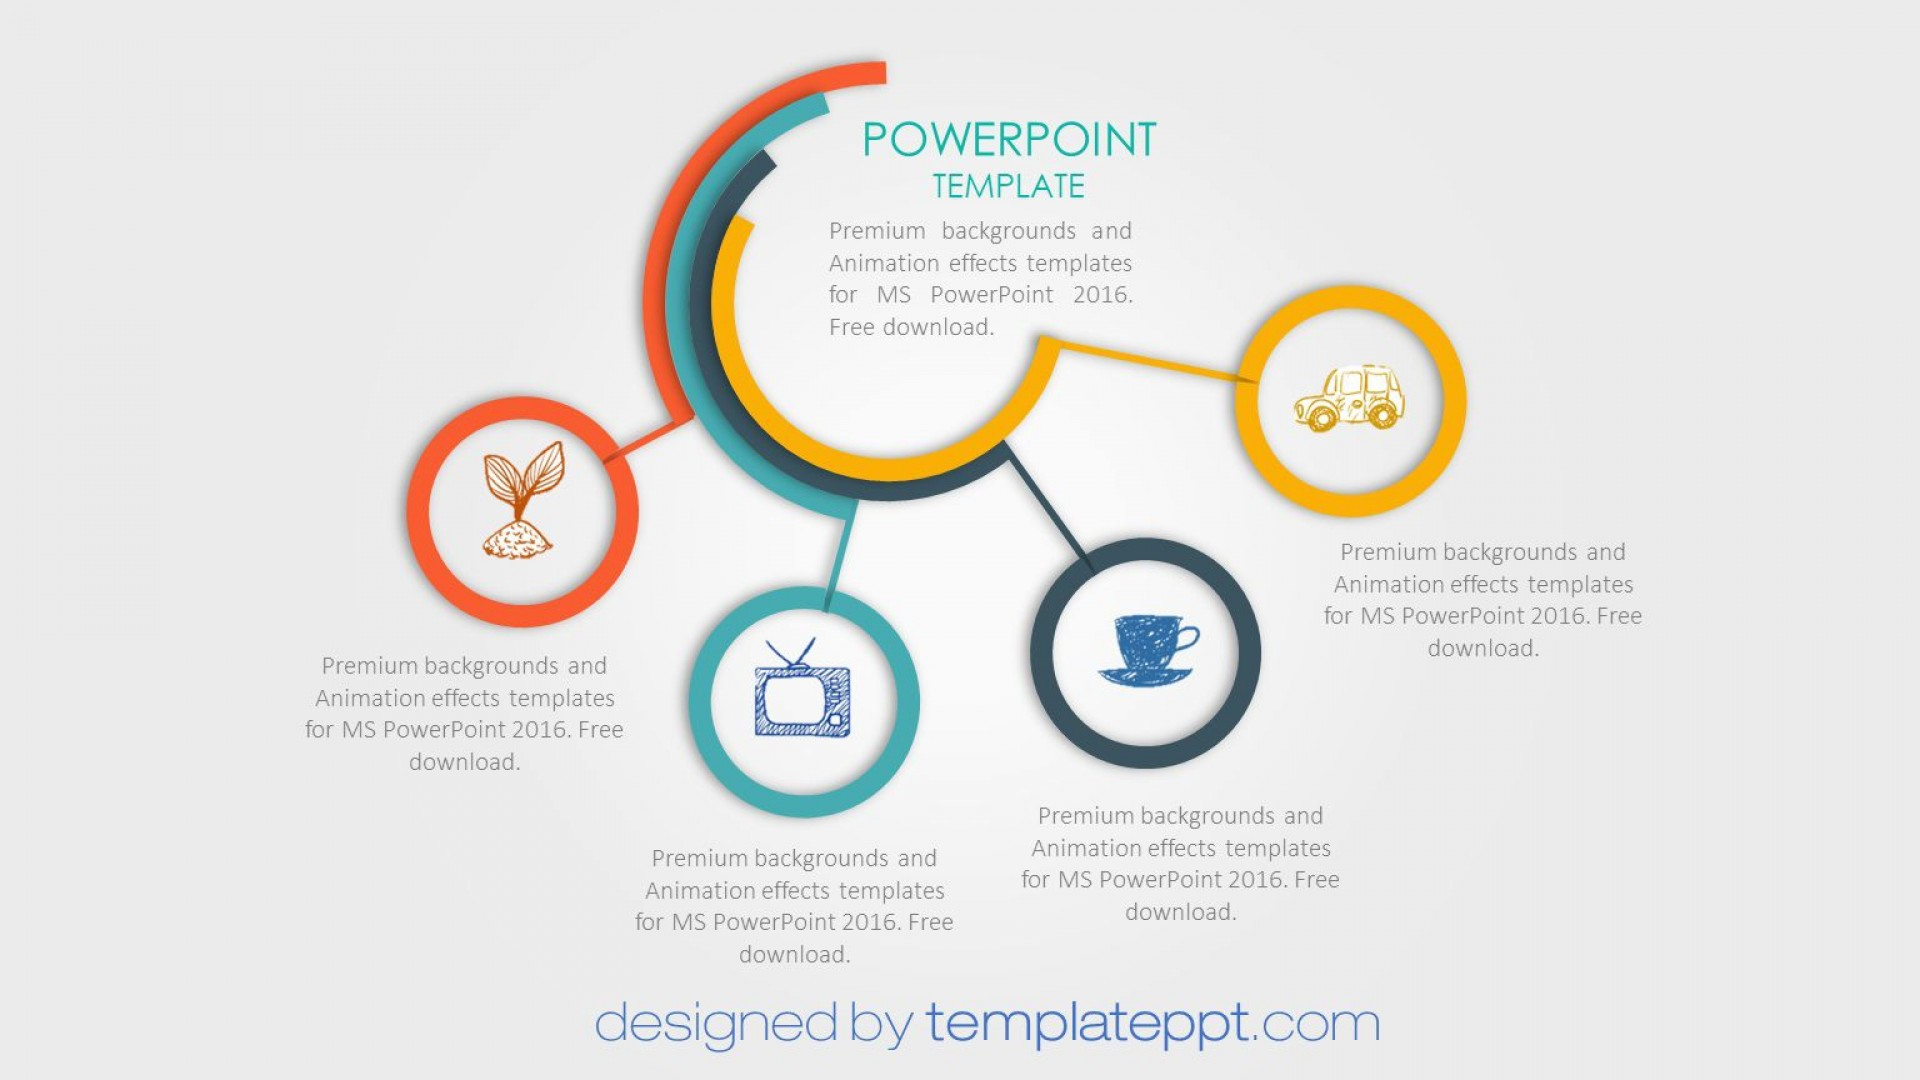 000 Phenomenal Ppt Template Free Download High Def  Powerpoint 2020 Microsoft History 20181920